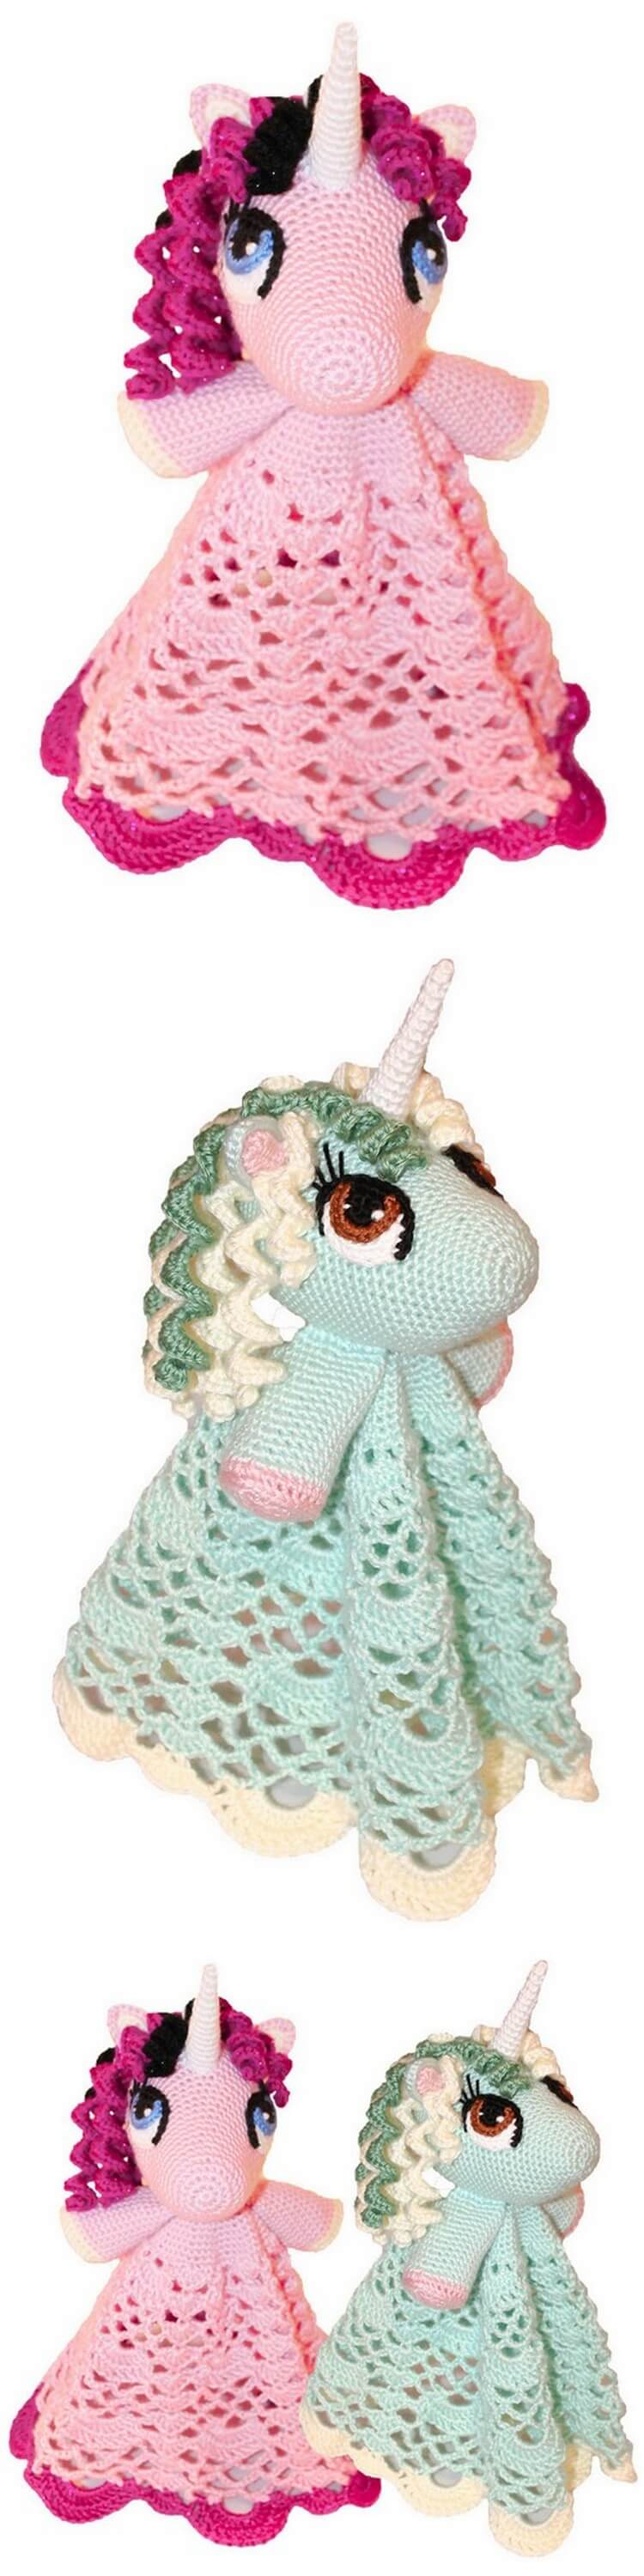 Crochet Unicorn Pattern (30)